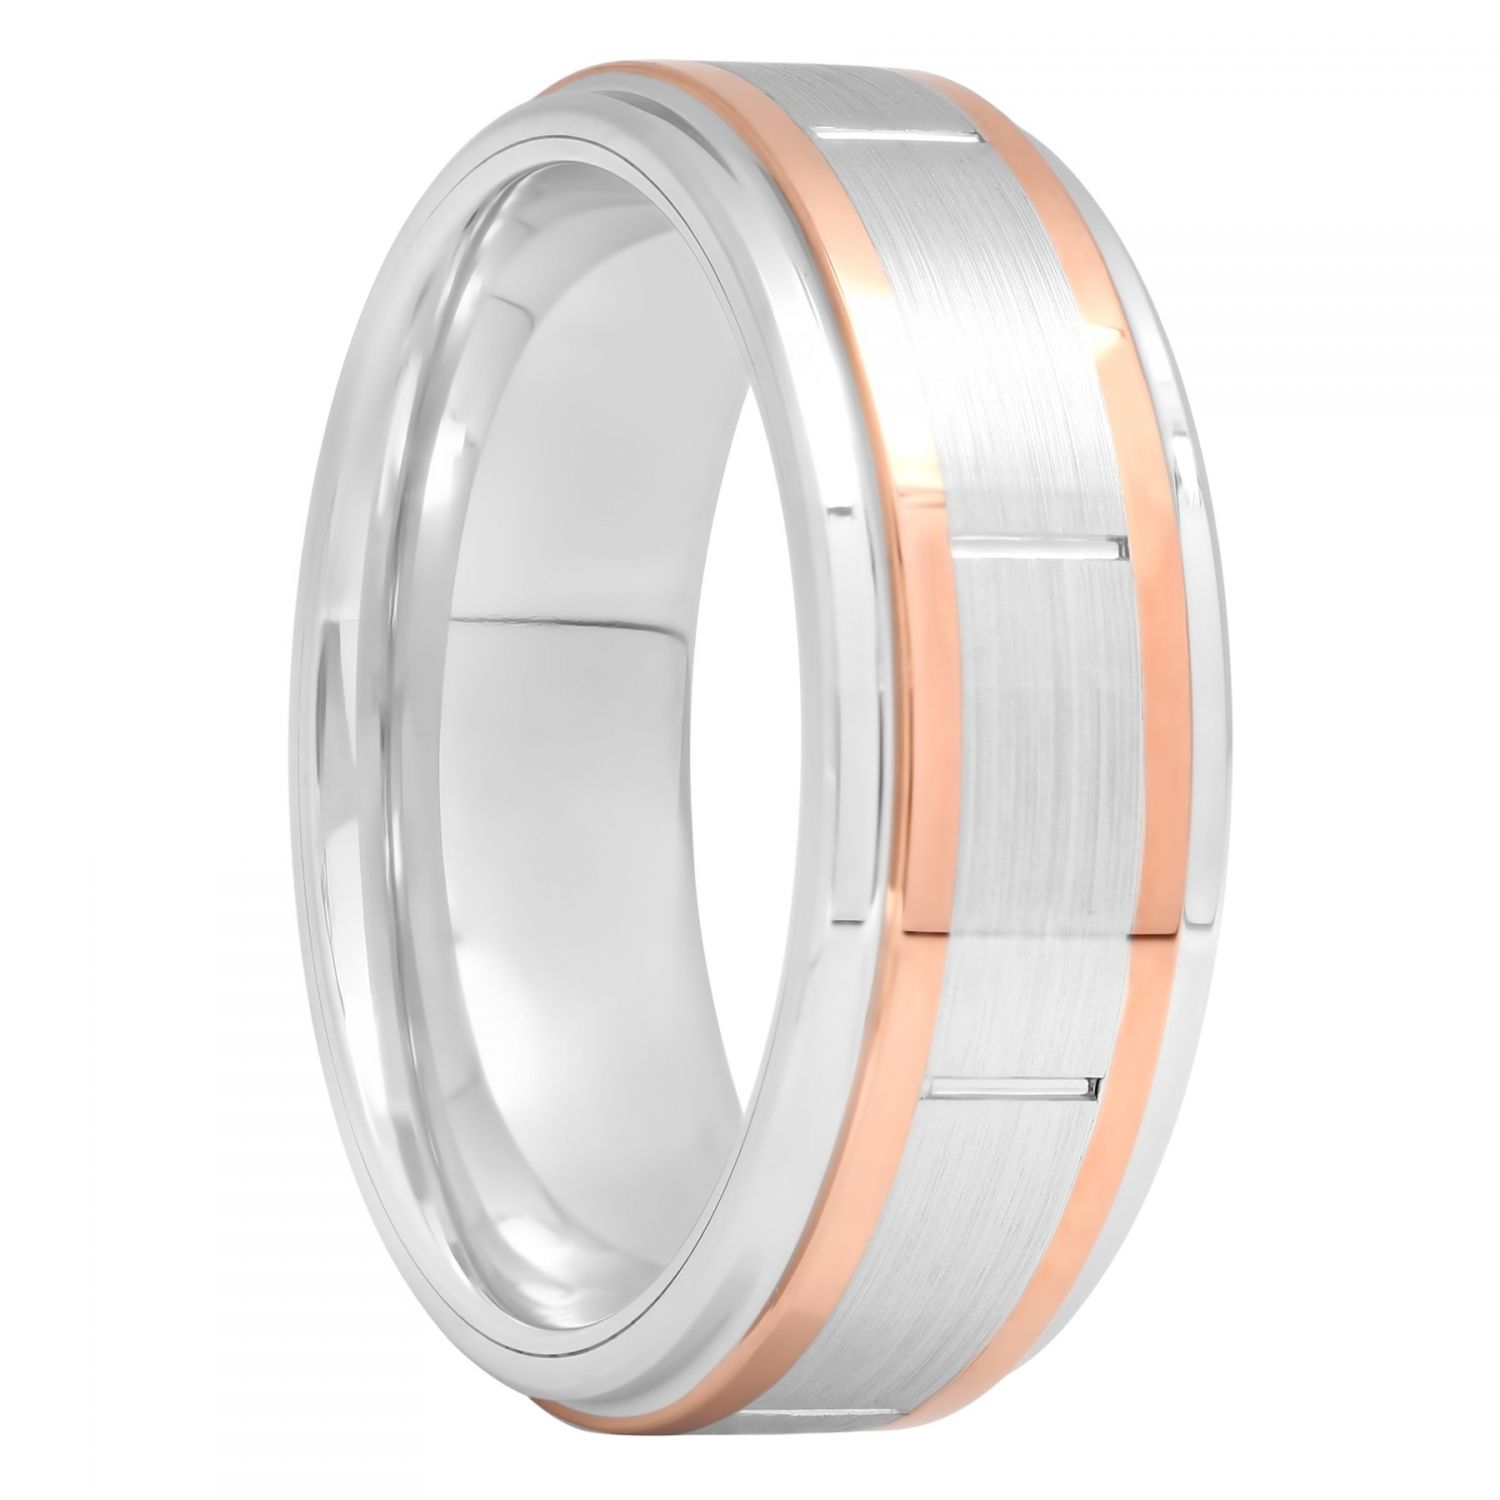 Cobalt Two-Tone Rose Gold Tone And White Band, 8mm